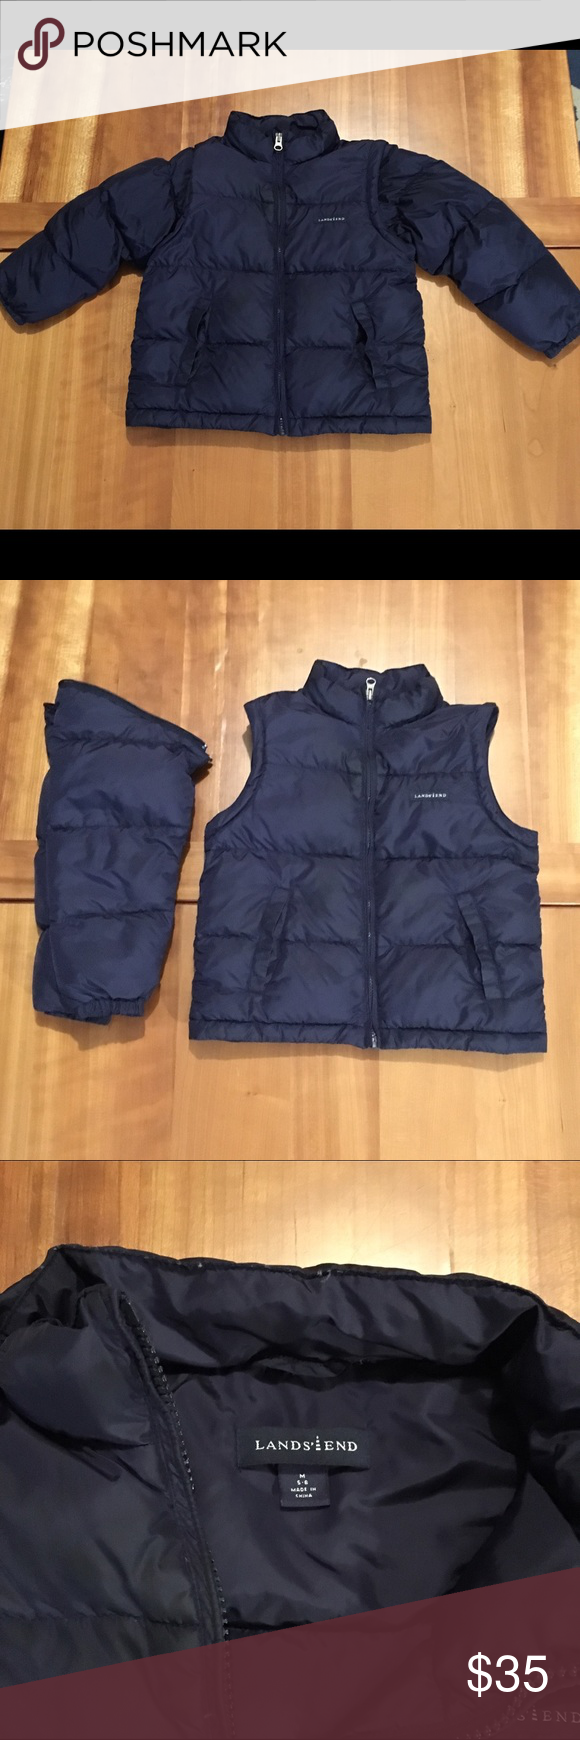 Lands End blue down filled puffer jacket ➡️ vest Lands End puffer jacket with removable sleeves to convert to a vest. Goose down filled. Navy blue color. Boys 5-6. Gently used. No rips or stains found. Lands' End Jackets & Coats Puffers